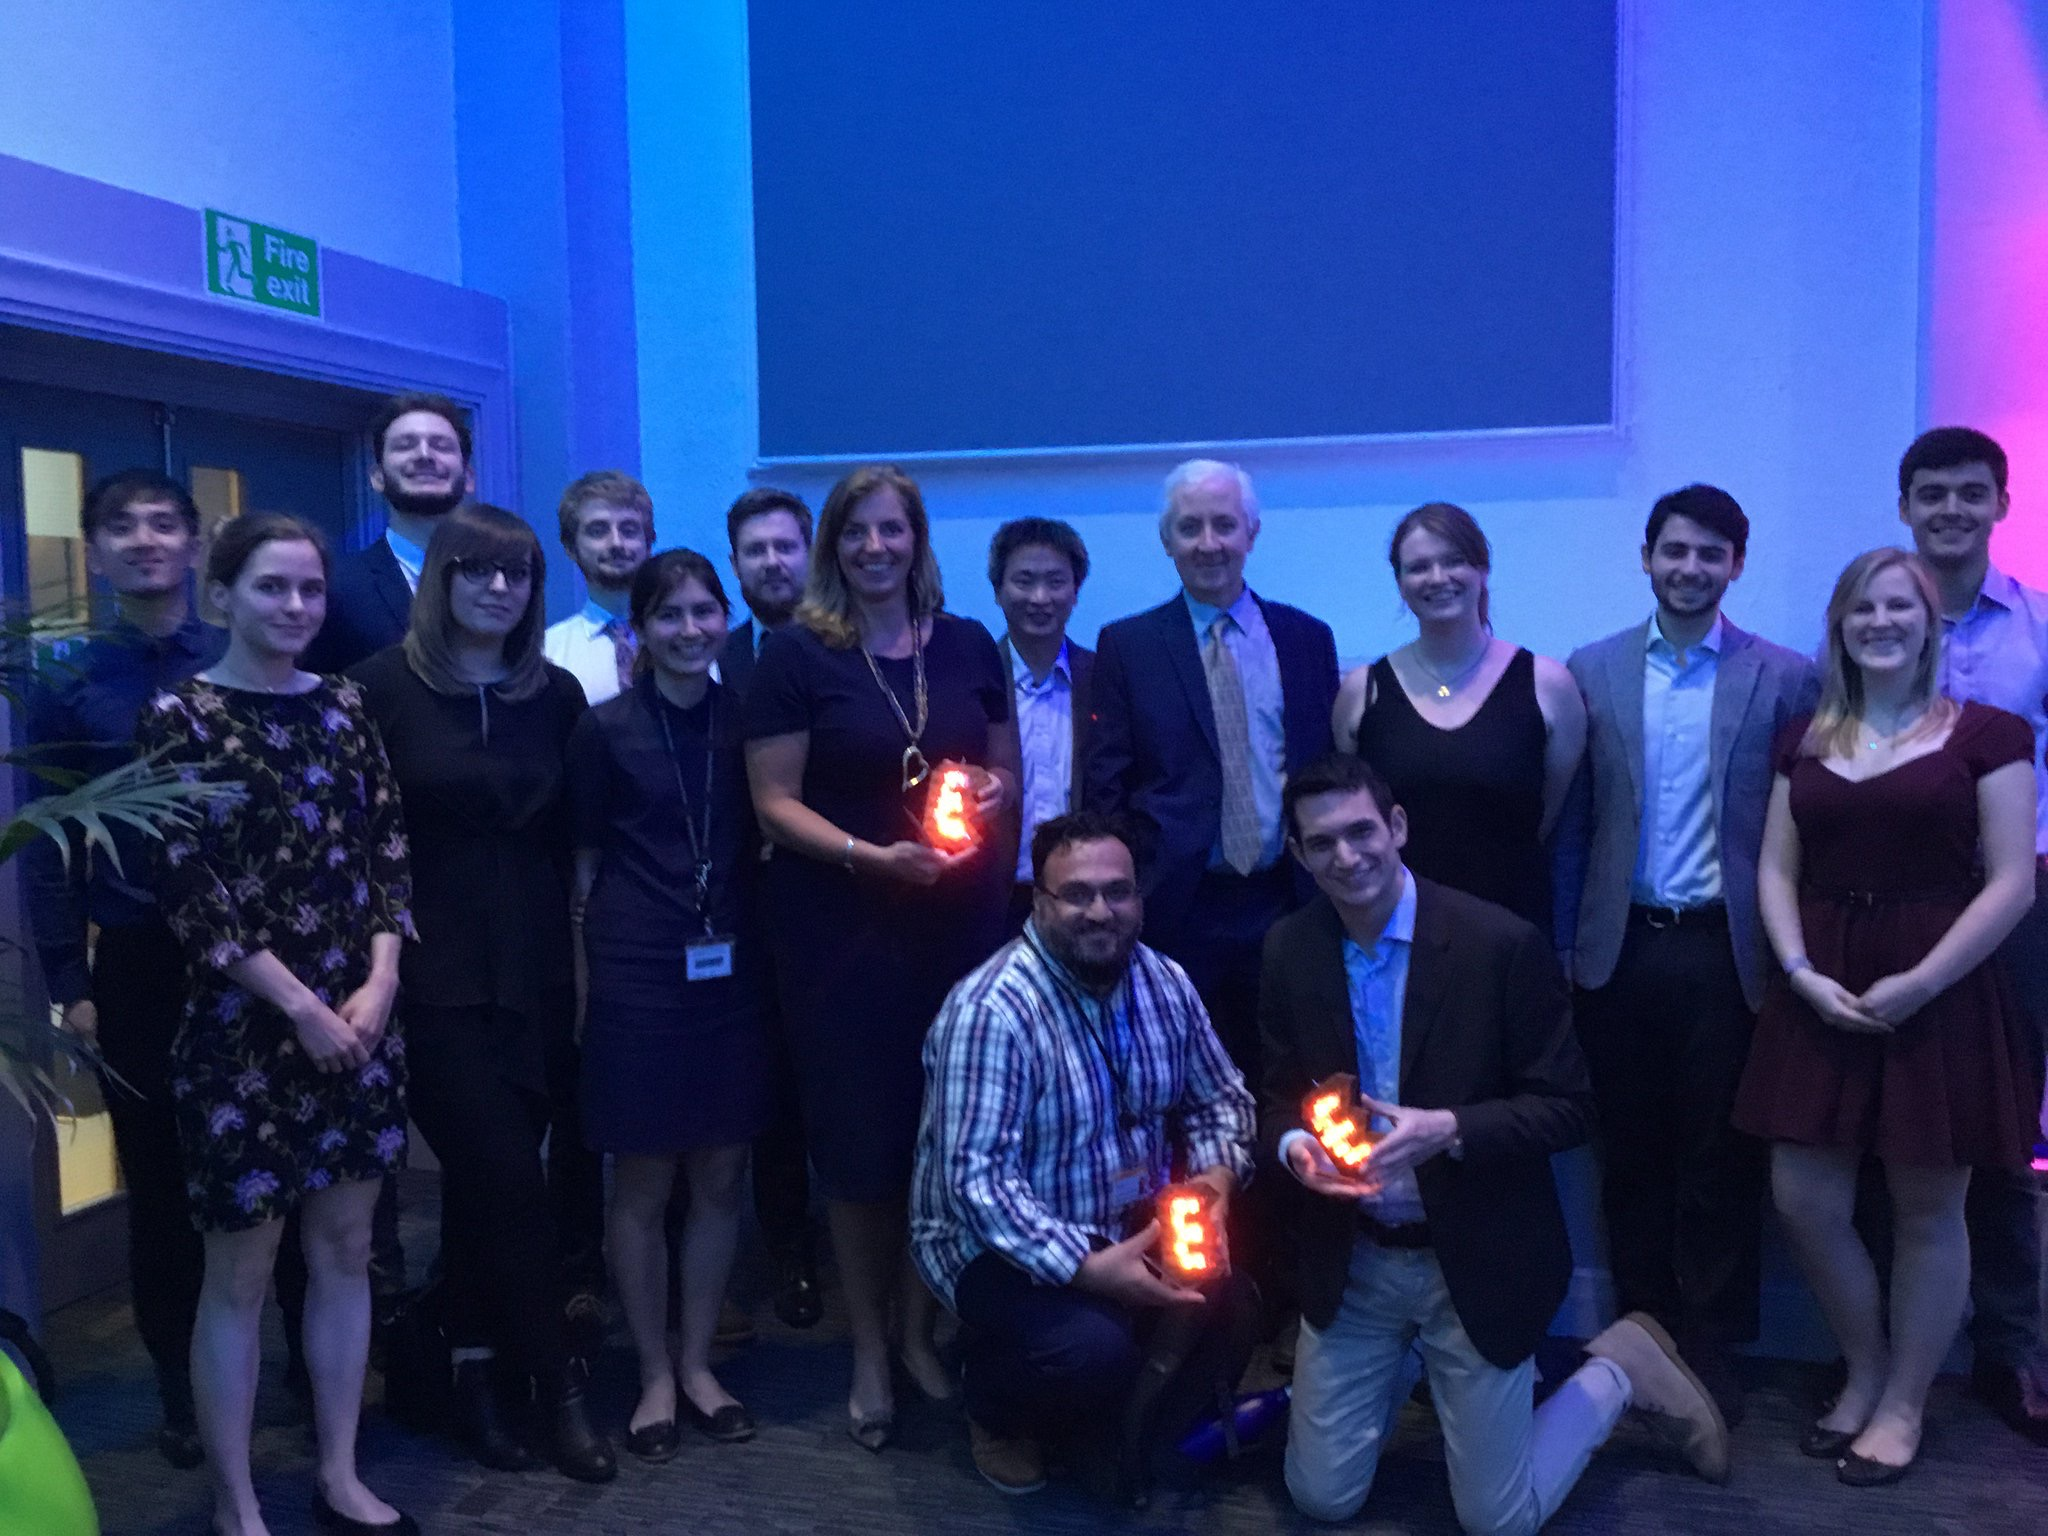 MetaboLight awarded Best Research Group prize at Provost's Engineering Engagement Awards 2018 thumbnail